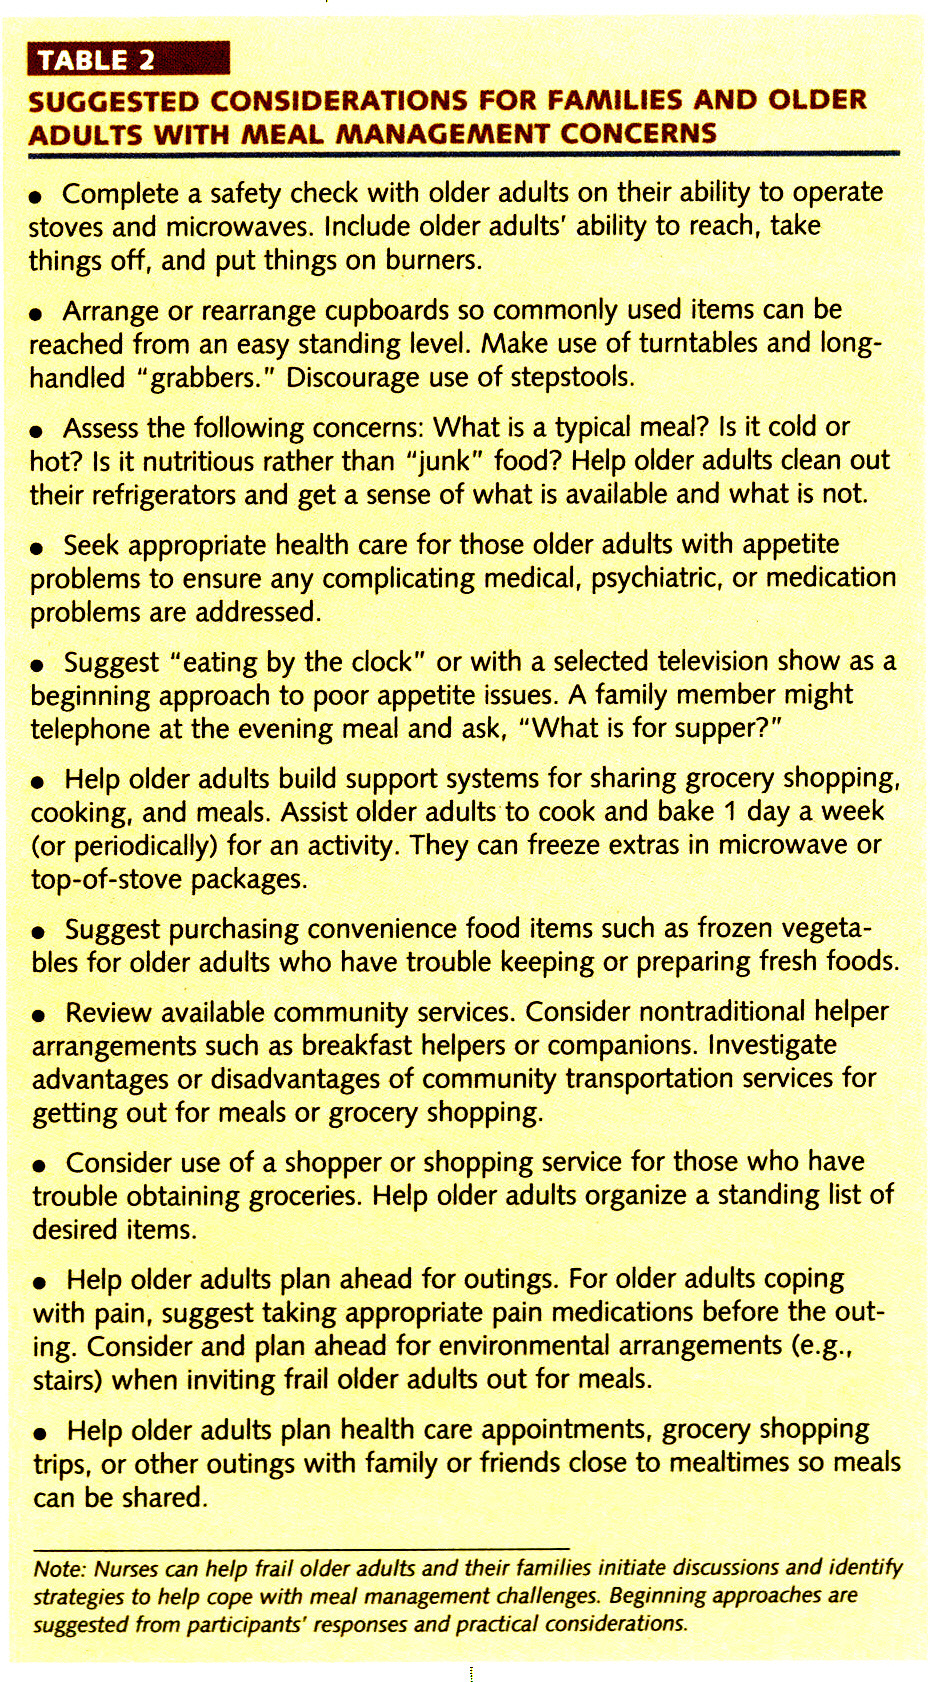 TABLE 2SUGGESTED CONSIDERATIONS FOR FAMILIES AND OLDER ADULTS WITH MEAL MANAGEMENT CONCERNS